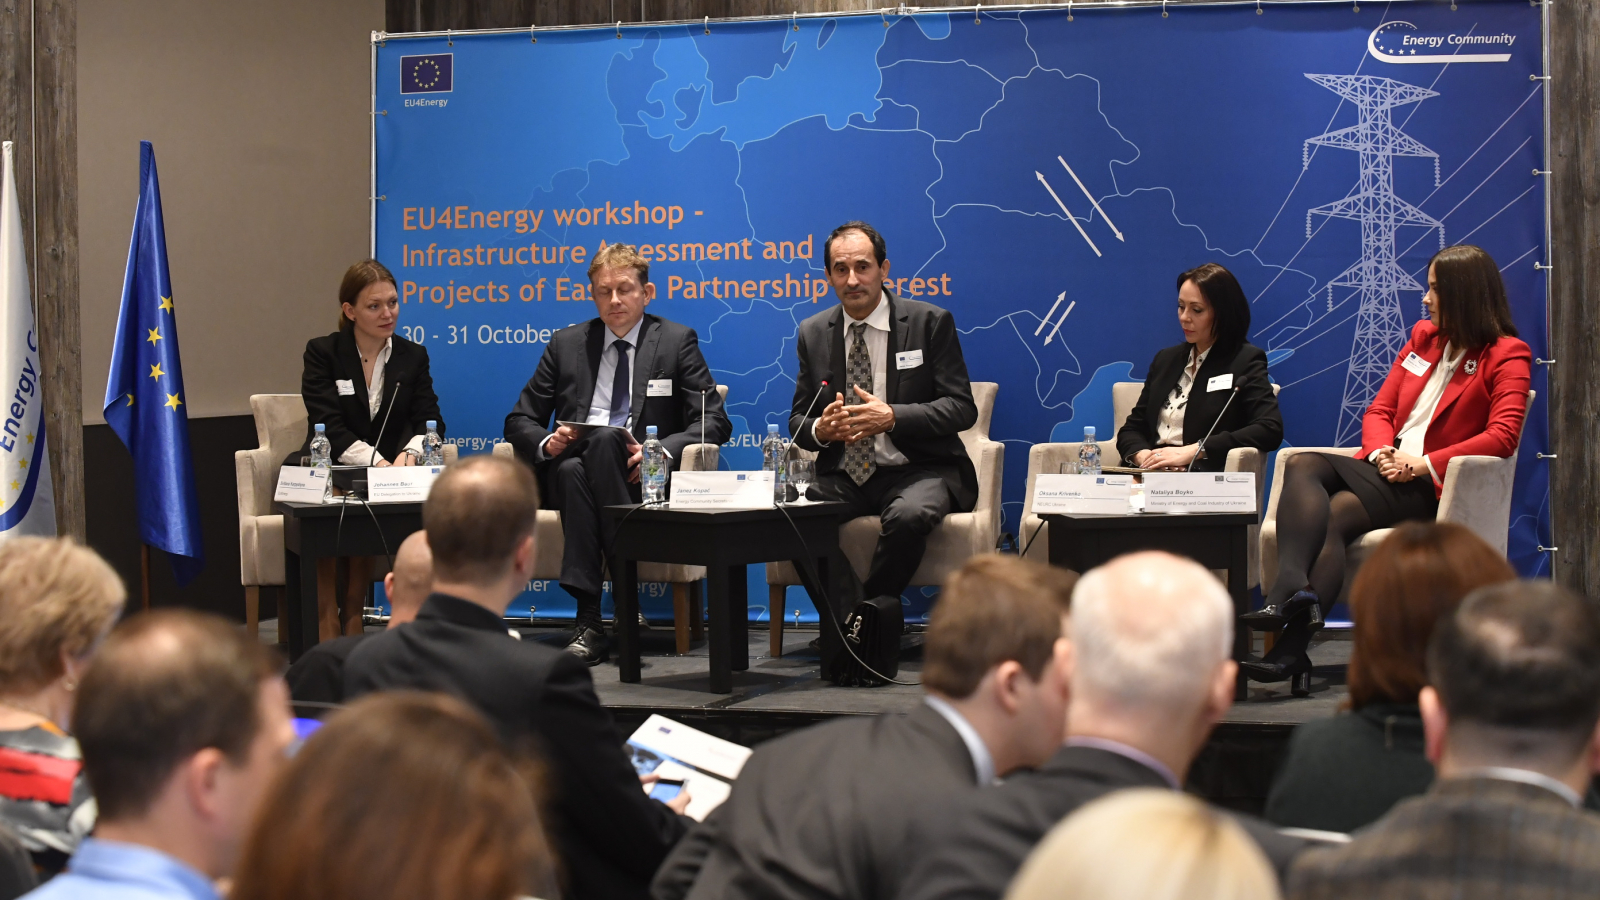 EU4Energy Workshop in Kyiv